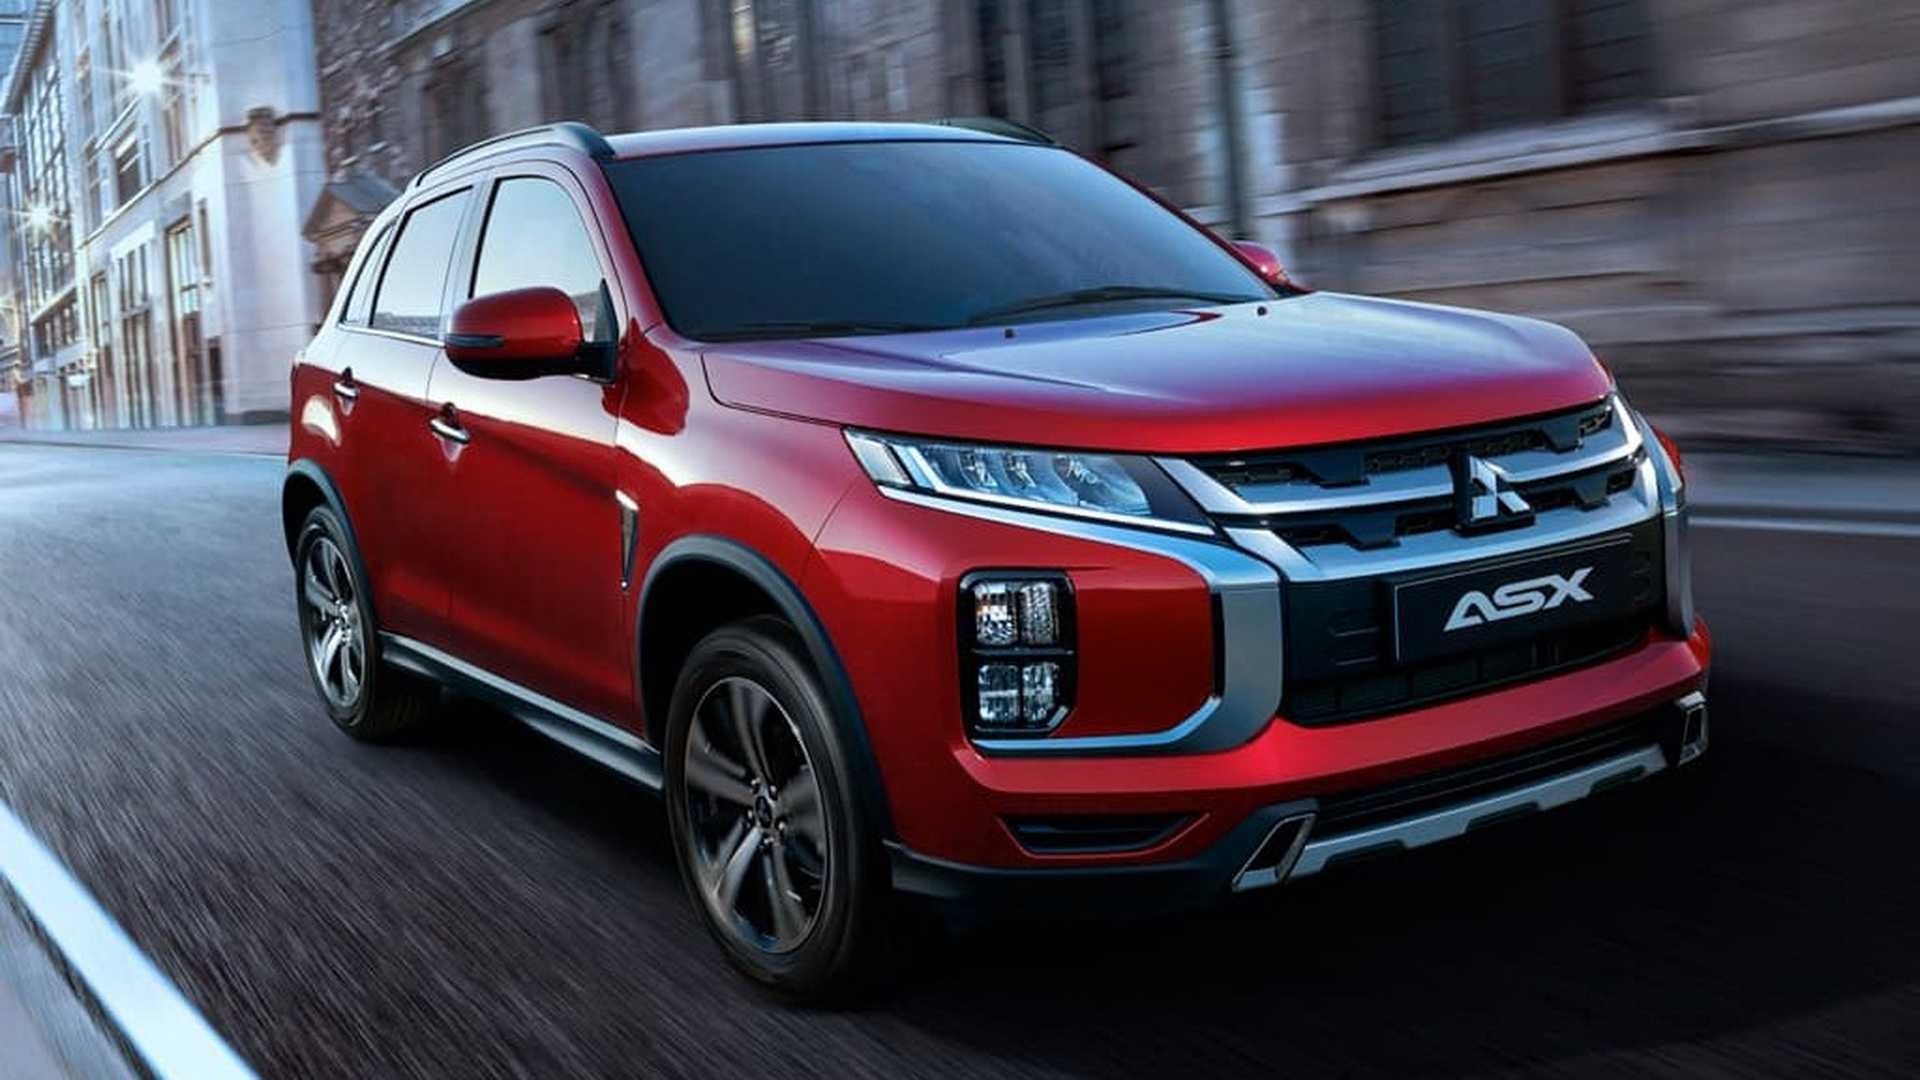 mitsubishi asx 2020  u00e9 apresentado com mudan u00e7as no visual